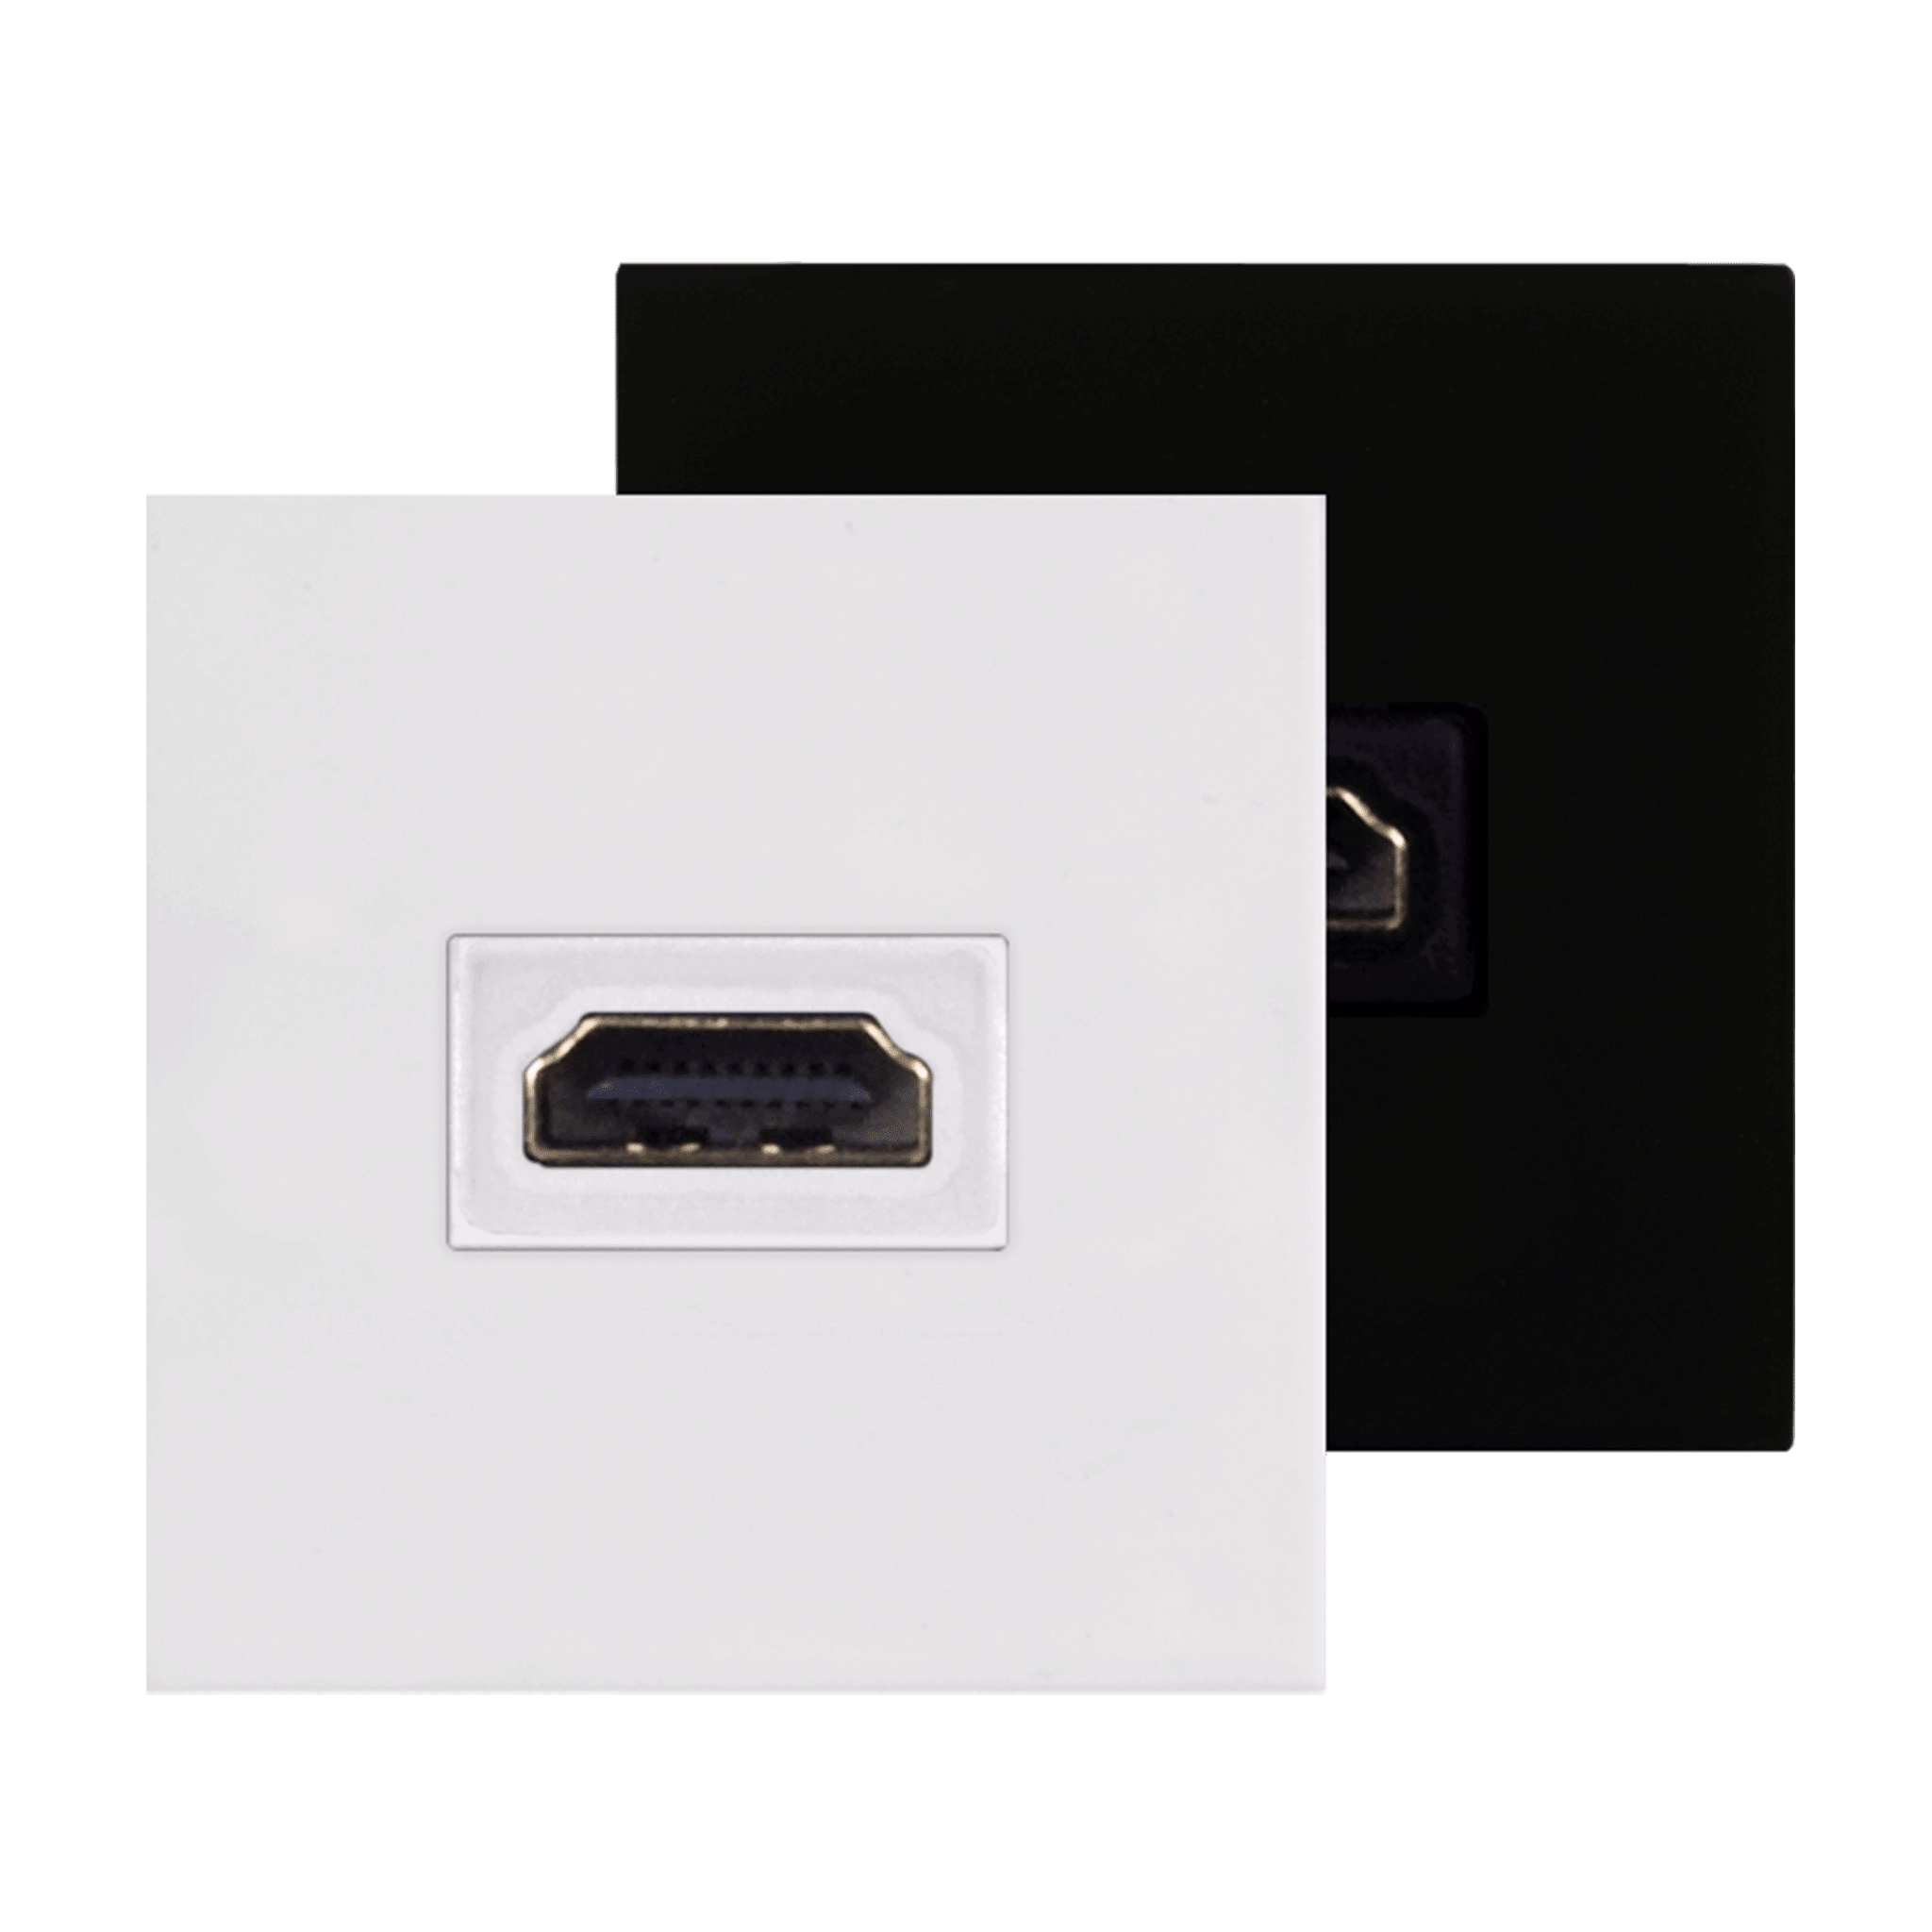 CP45HDM - Connection plate HDMI 45 x 45 mm